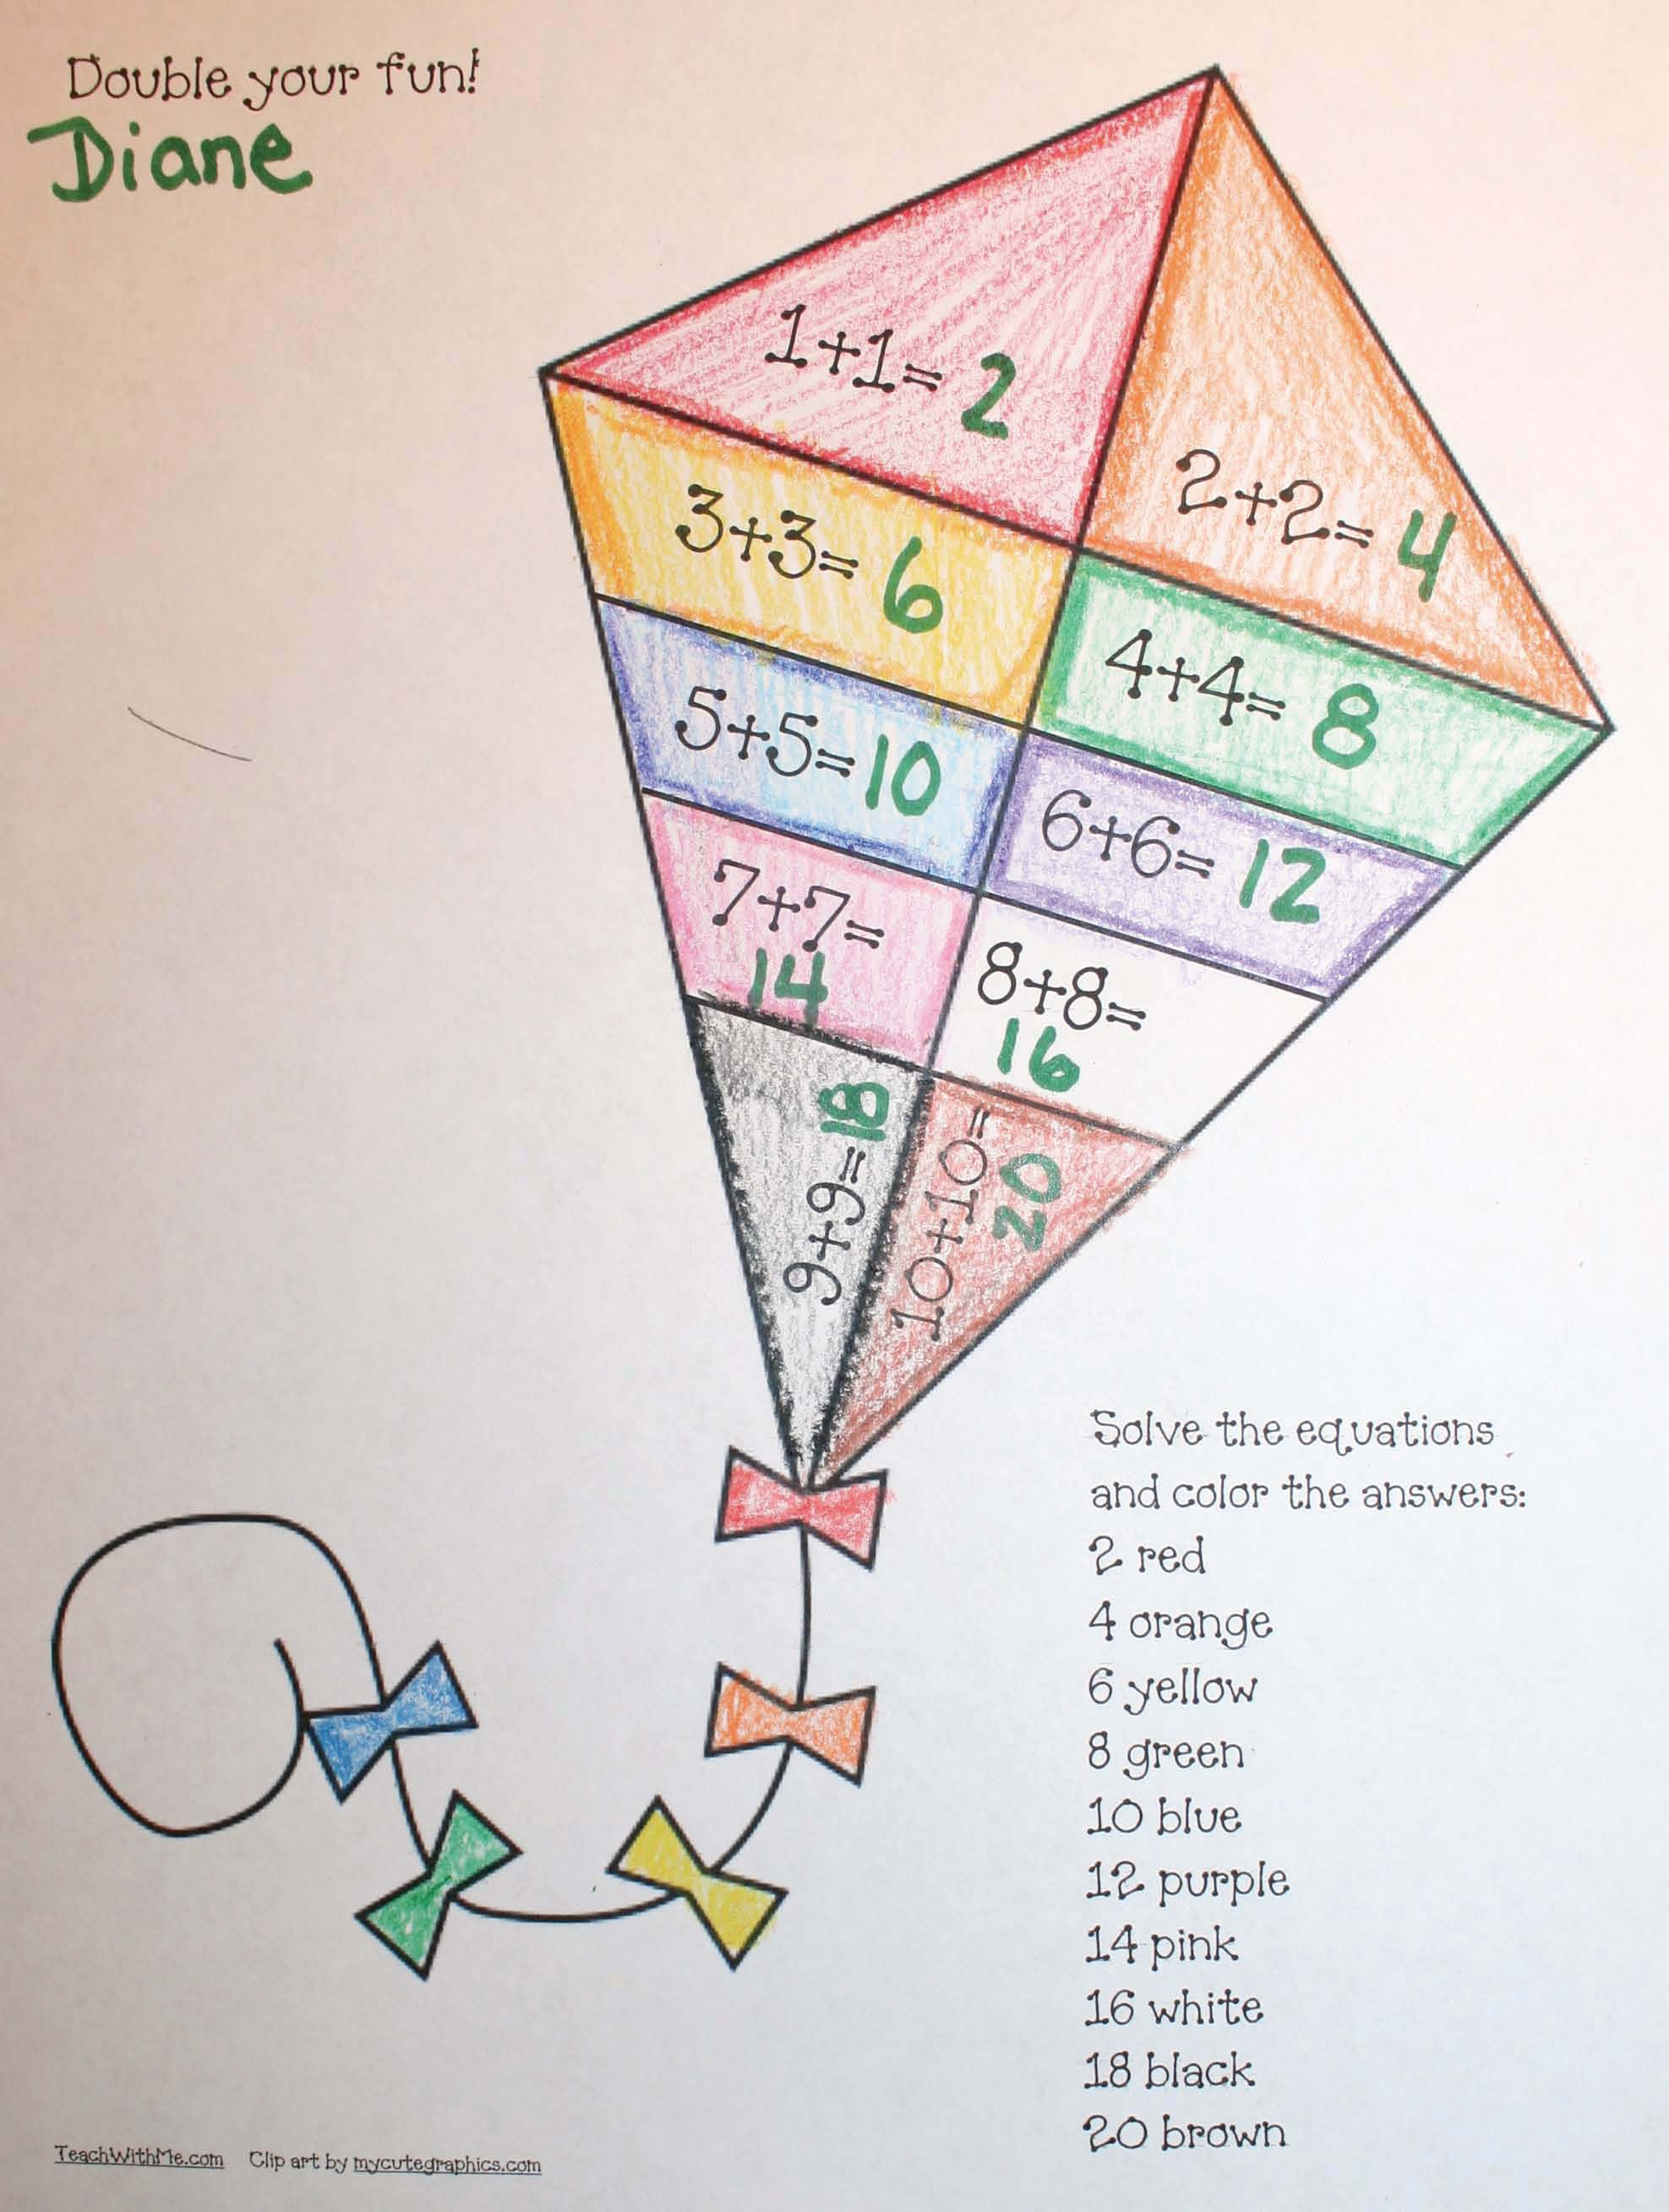 kite activities, common core kites, alphabet activities, alphabet games, alphabet assessment, skip counting activities, skip counting by 2s 3s 5s 10s, odd and even activities, tally marks, tally mark activities, number words, color words, doubles addition activities